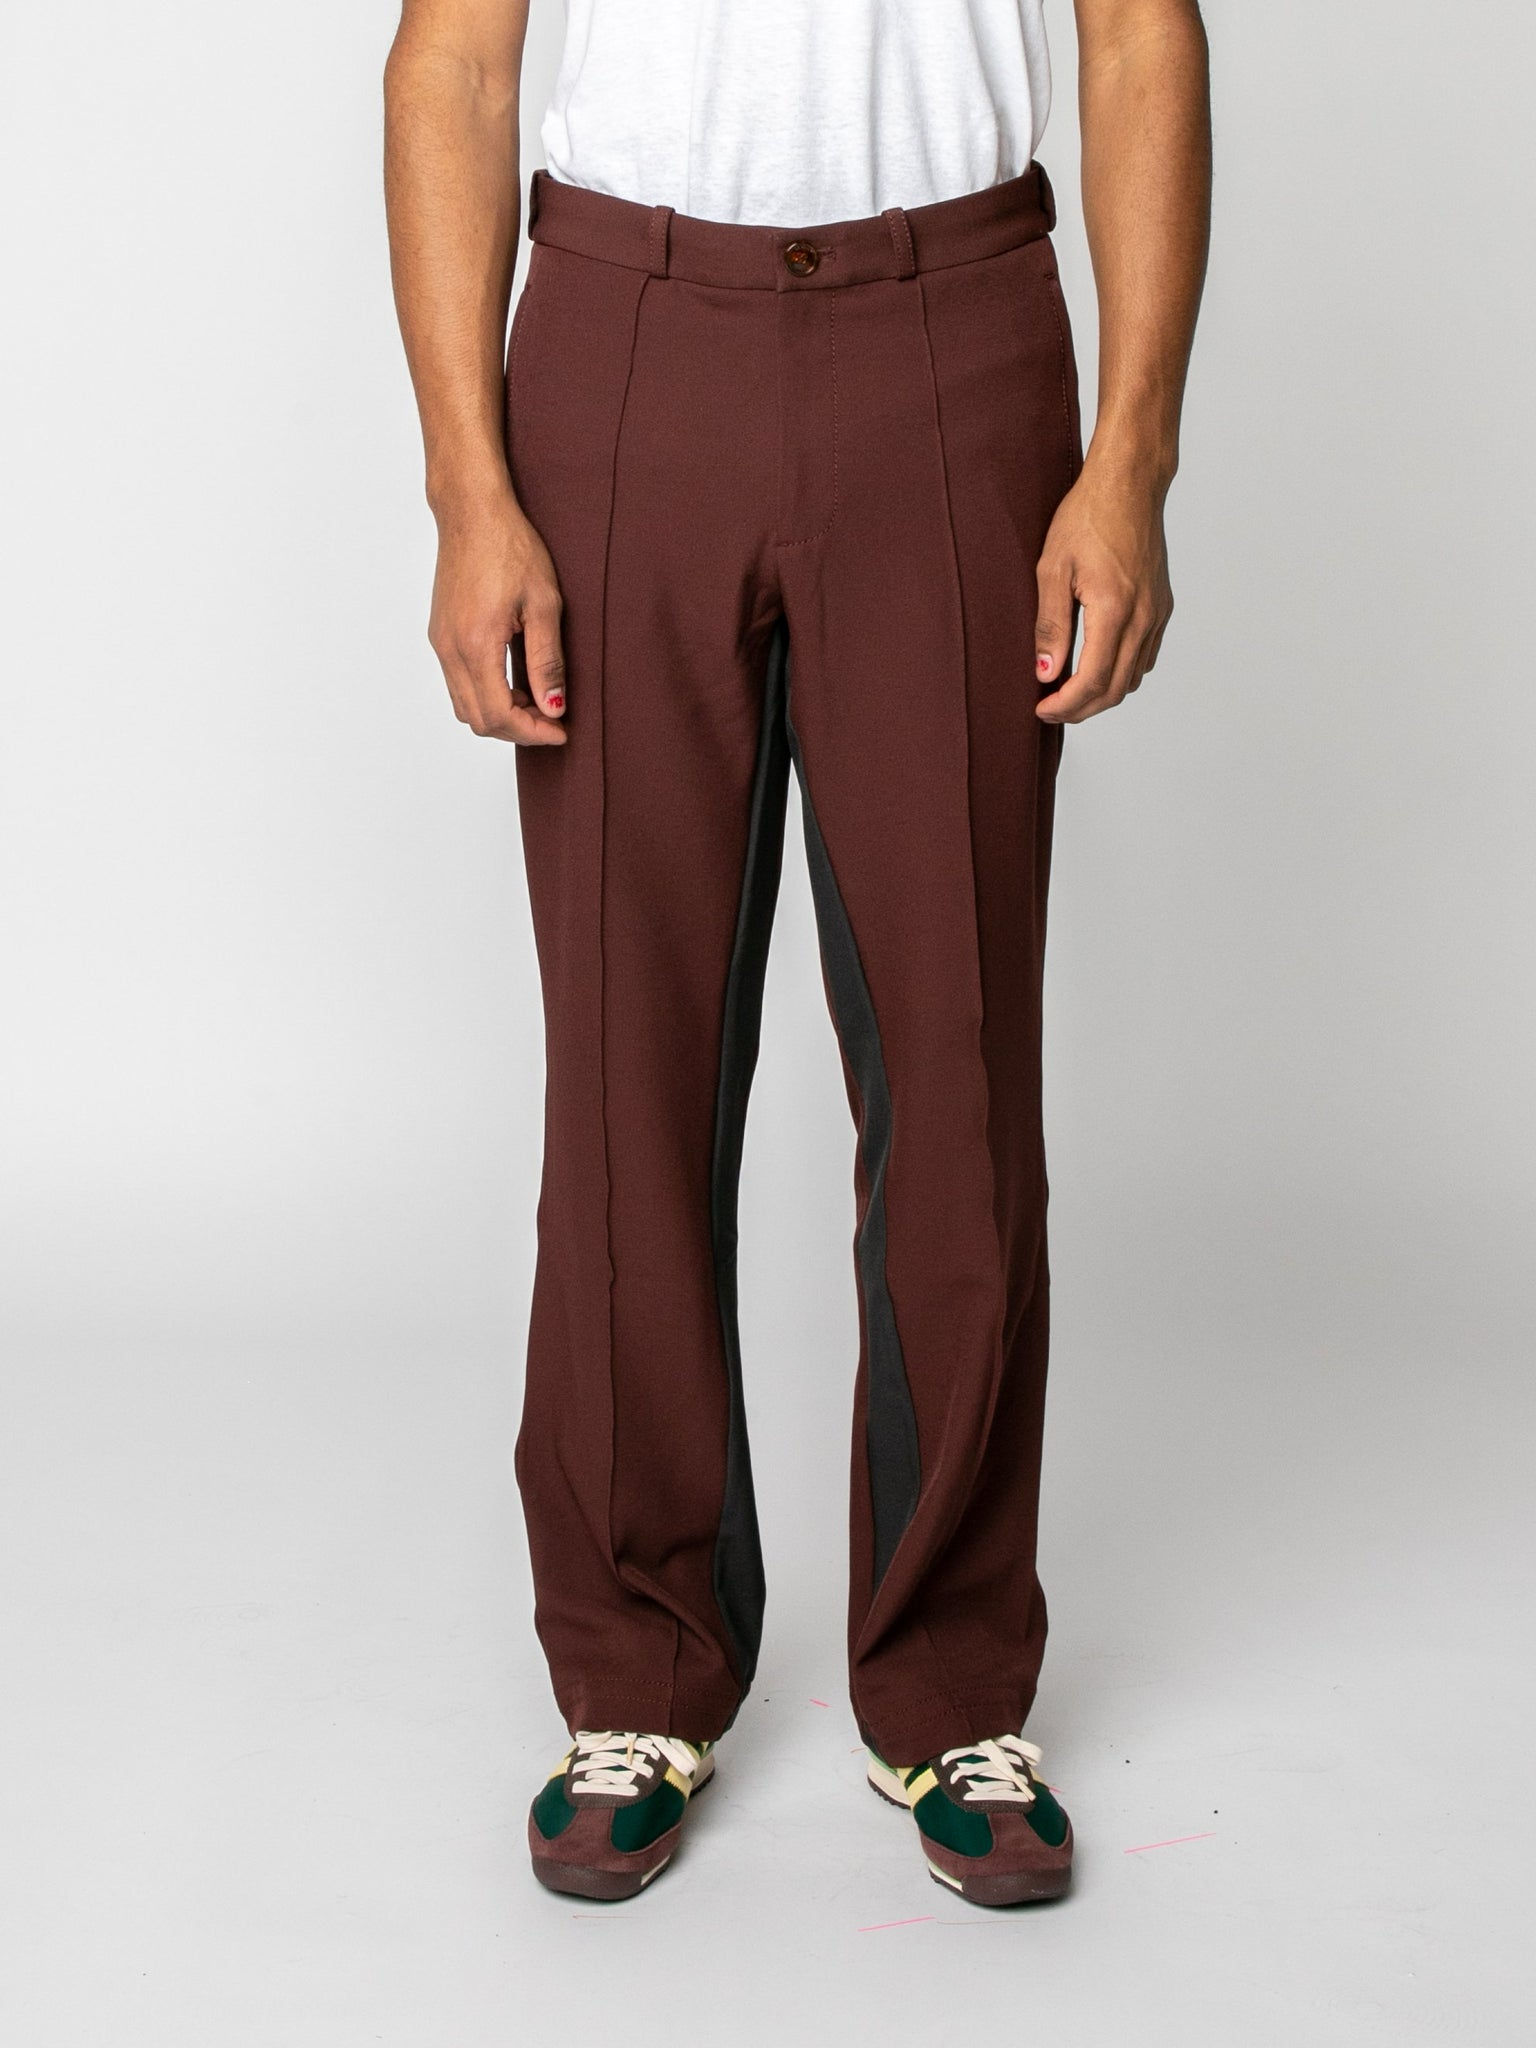 adidas-x-wales-bonner-rock-pants